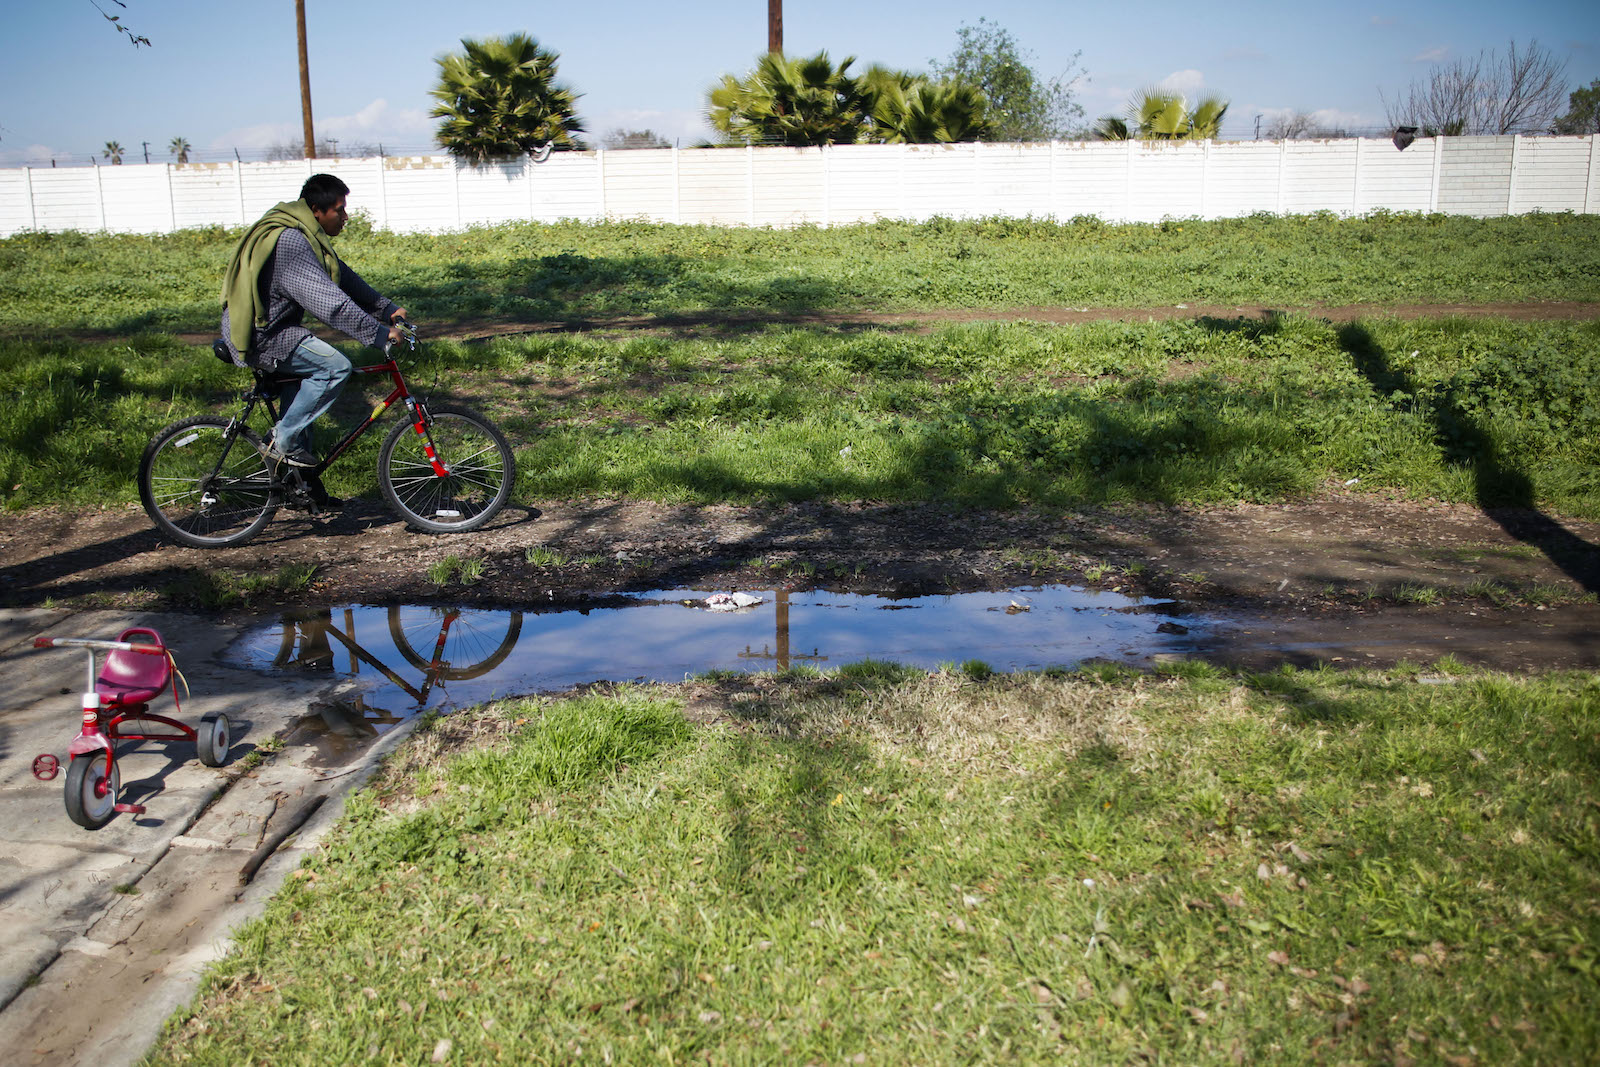 a man on a red bike pedals near a muddy pool of water in a green field